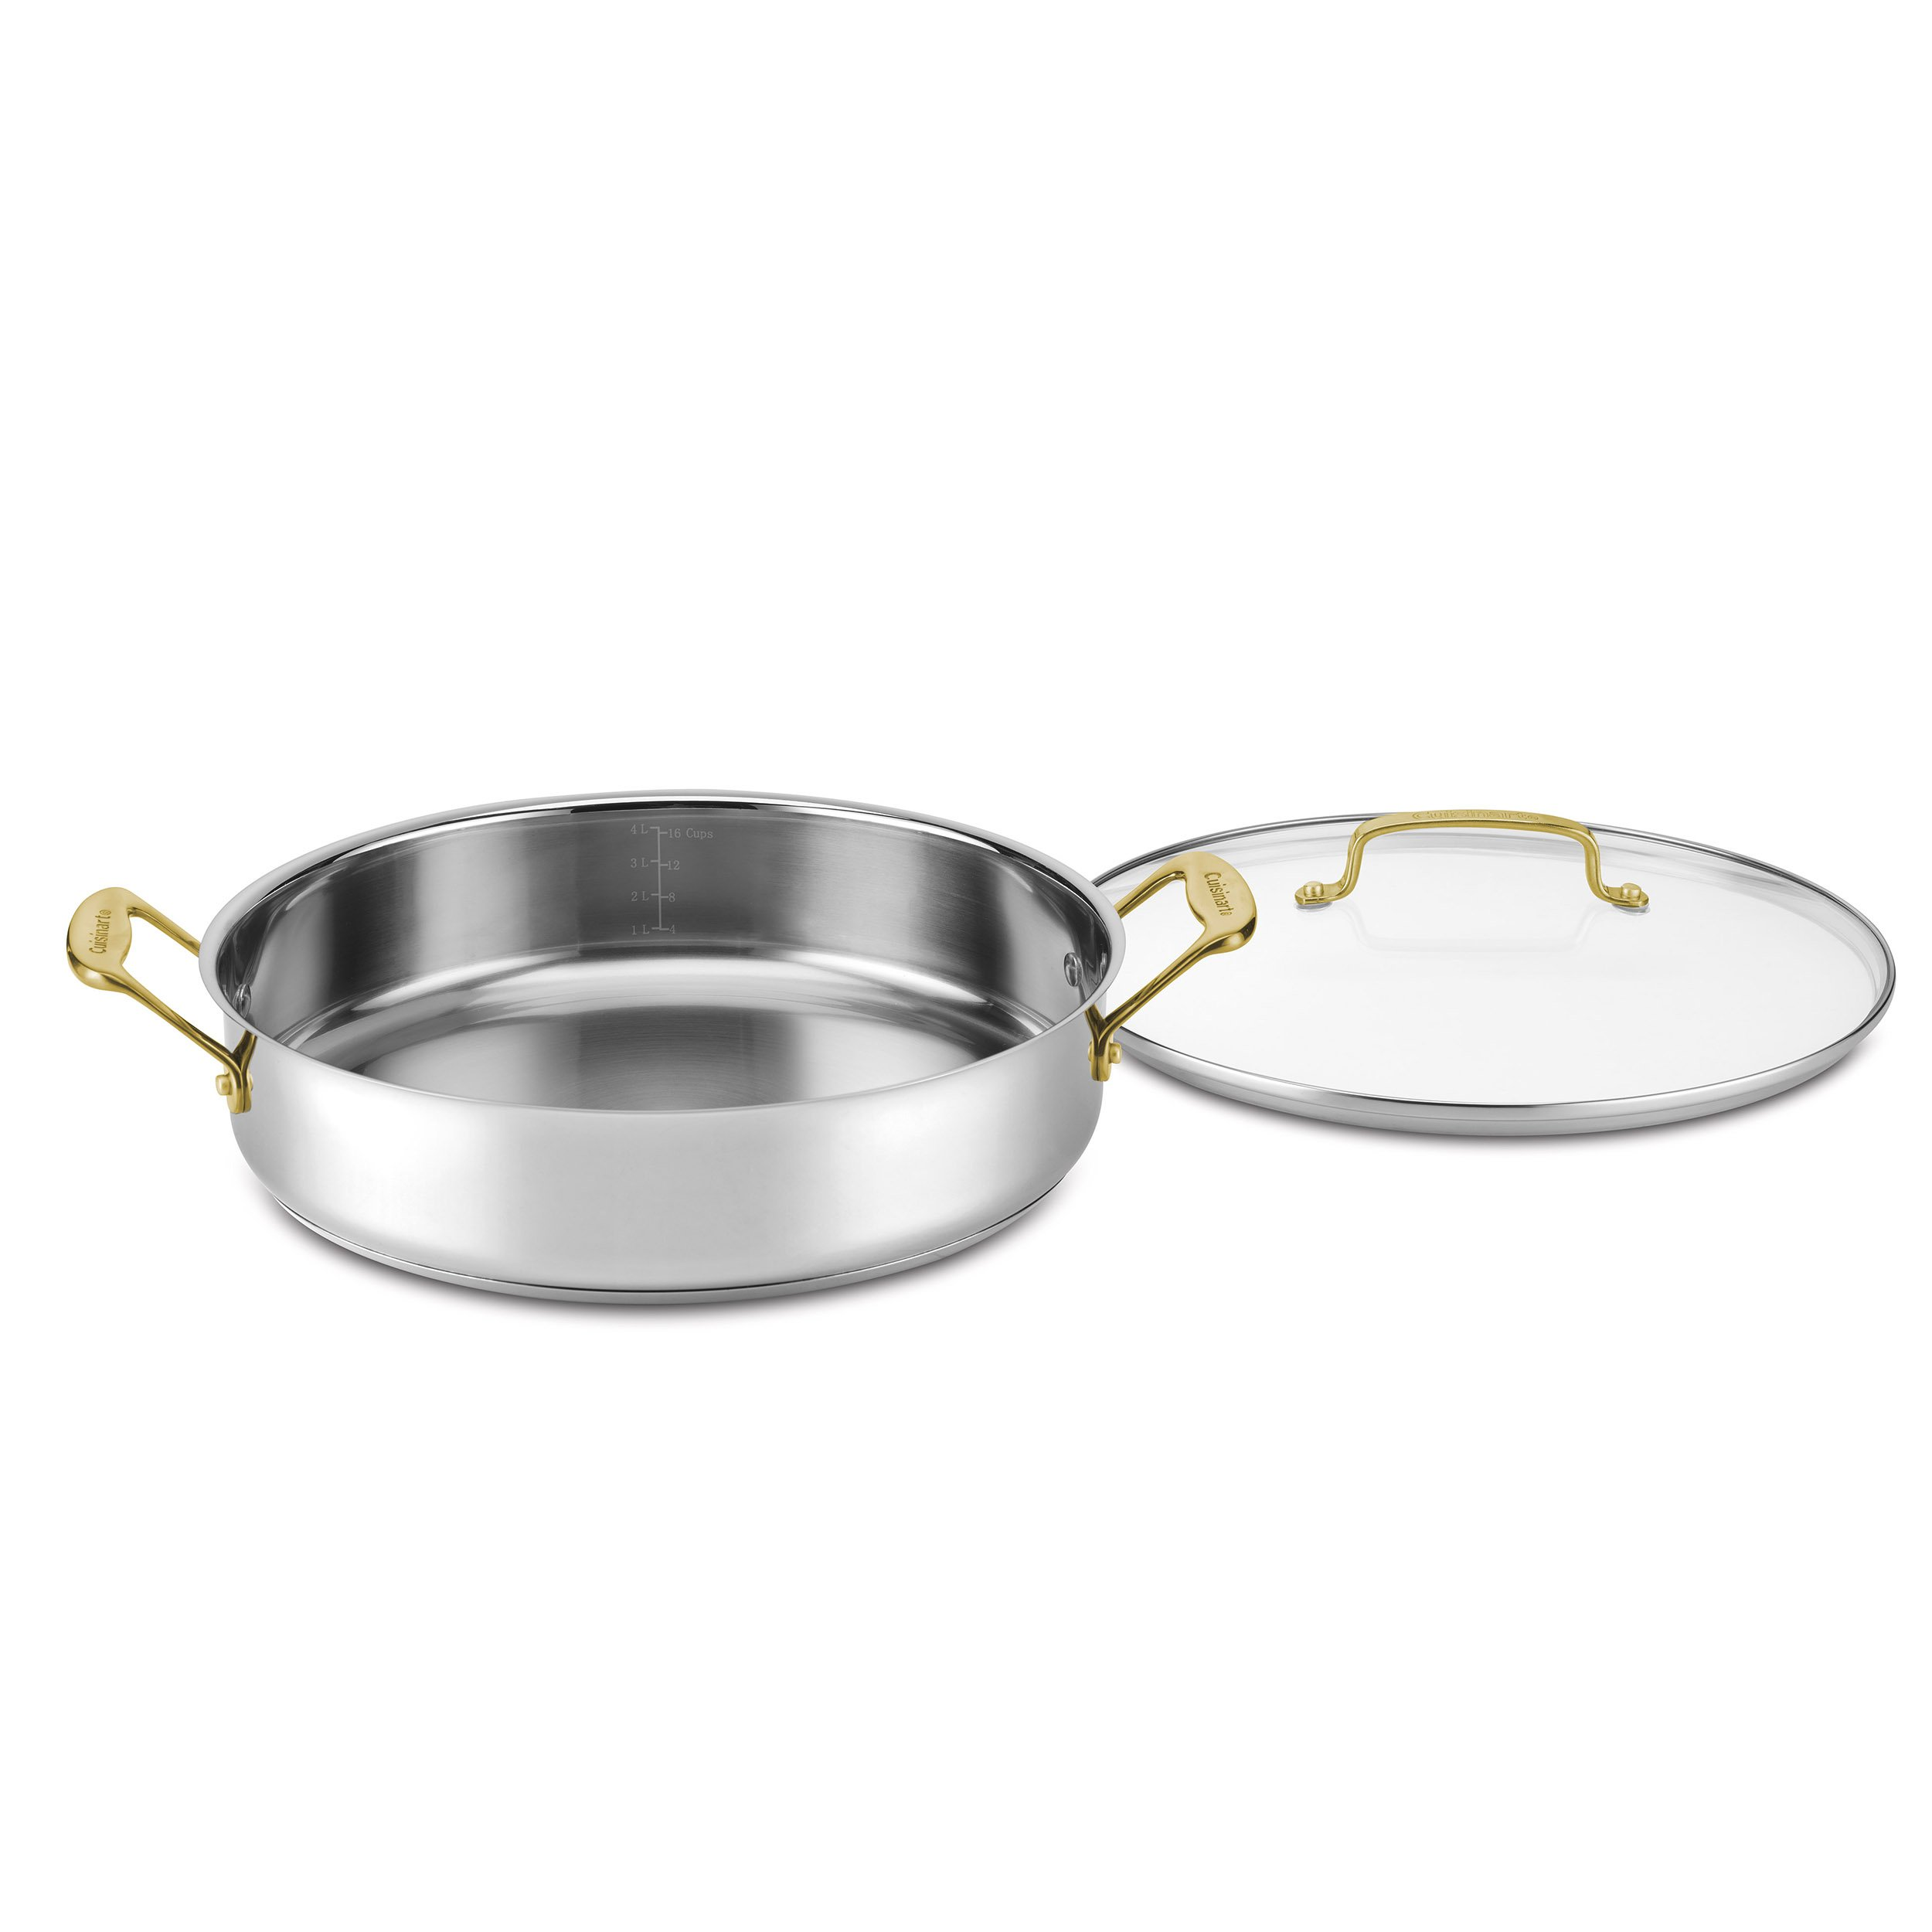 Cuisinart C7M55-30GD Mineral Collection Casserole with Cover, Medium, Stainless Steel